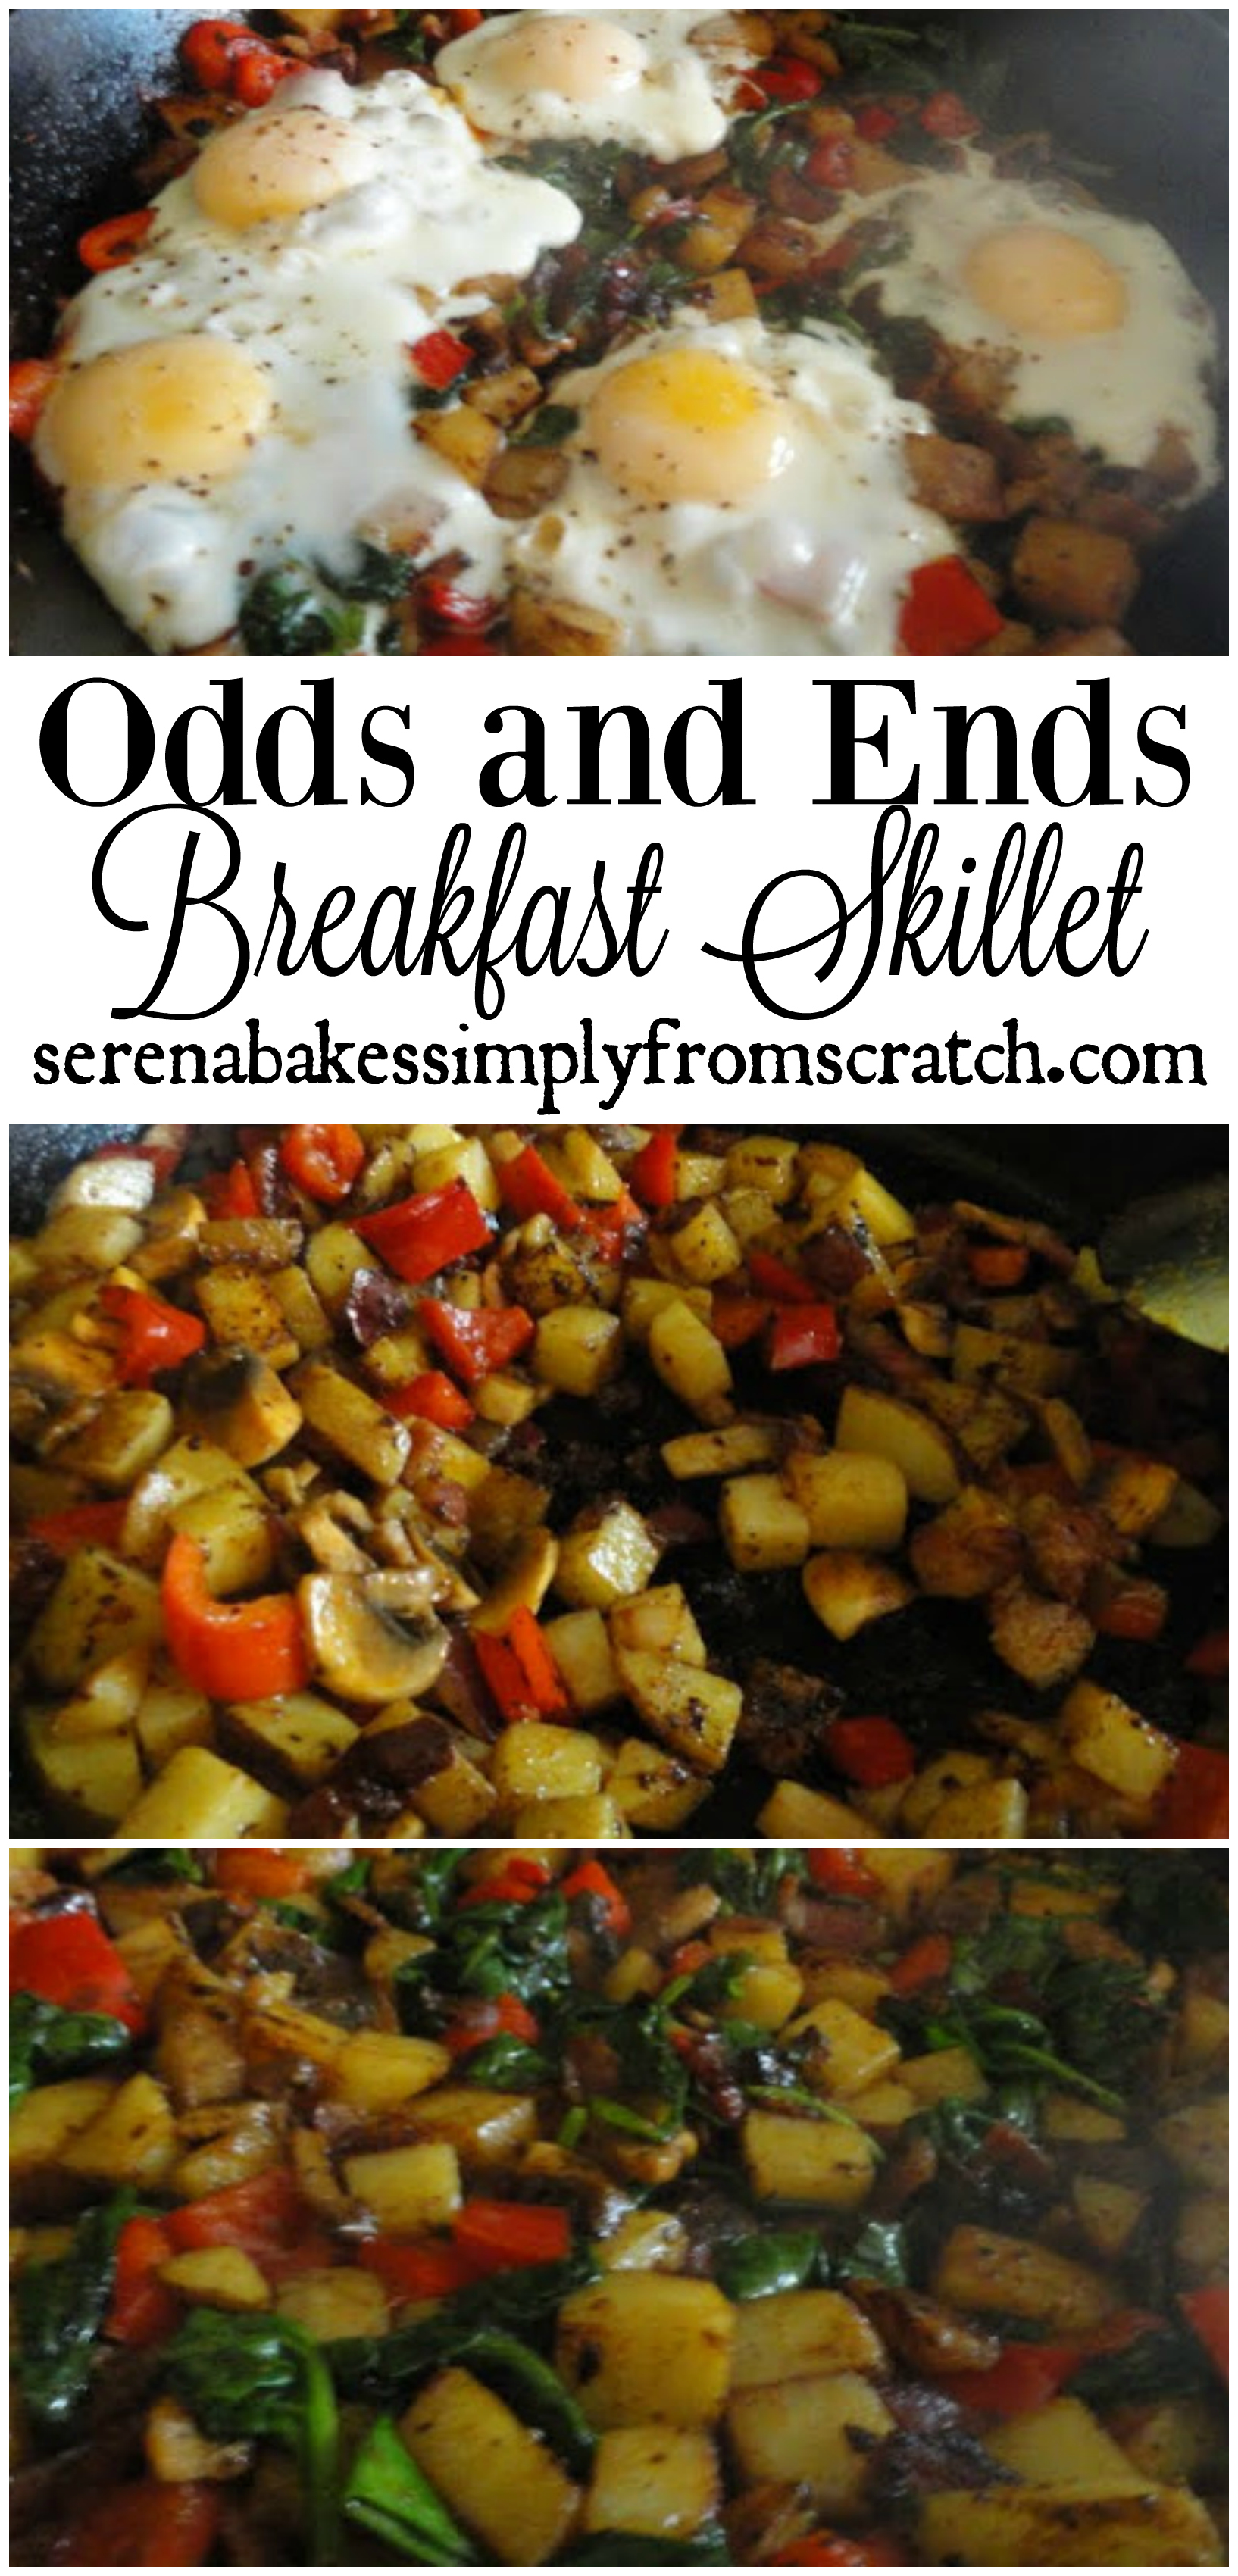 Odds and Ends Breakfast Skillet! A healthy way to start the day and perfect when you only have a little of everything! serenabakessimplyfromscratch.com